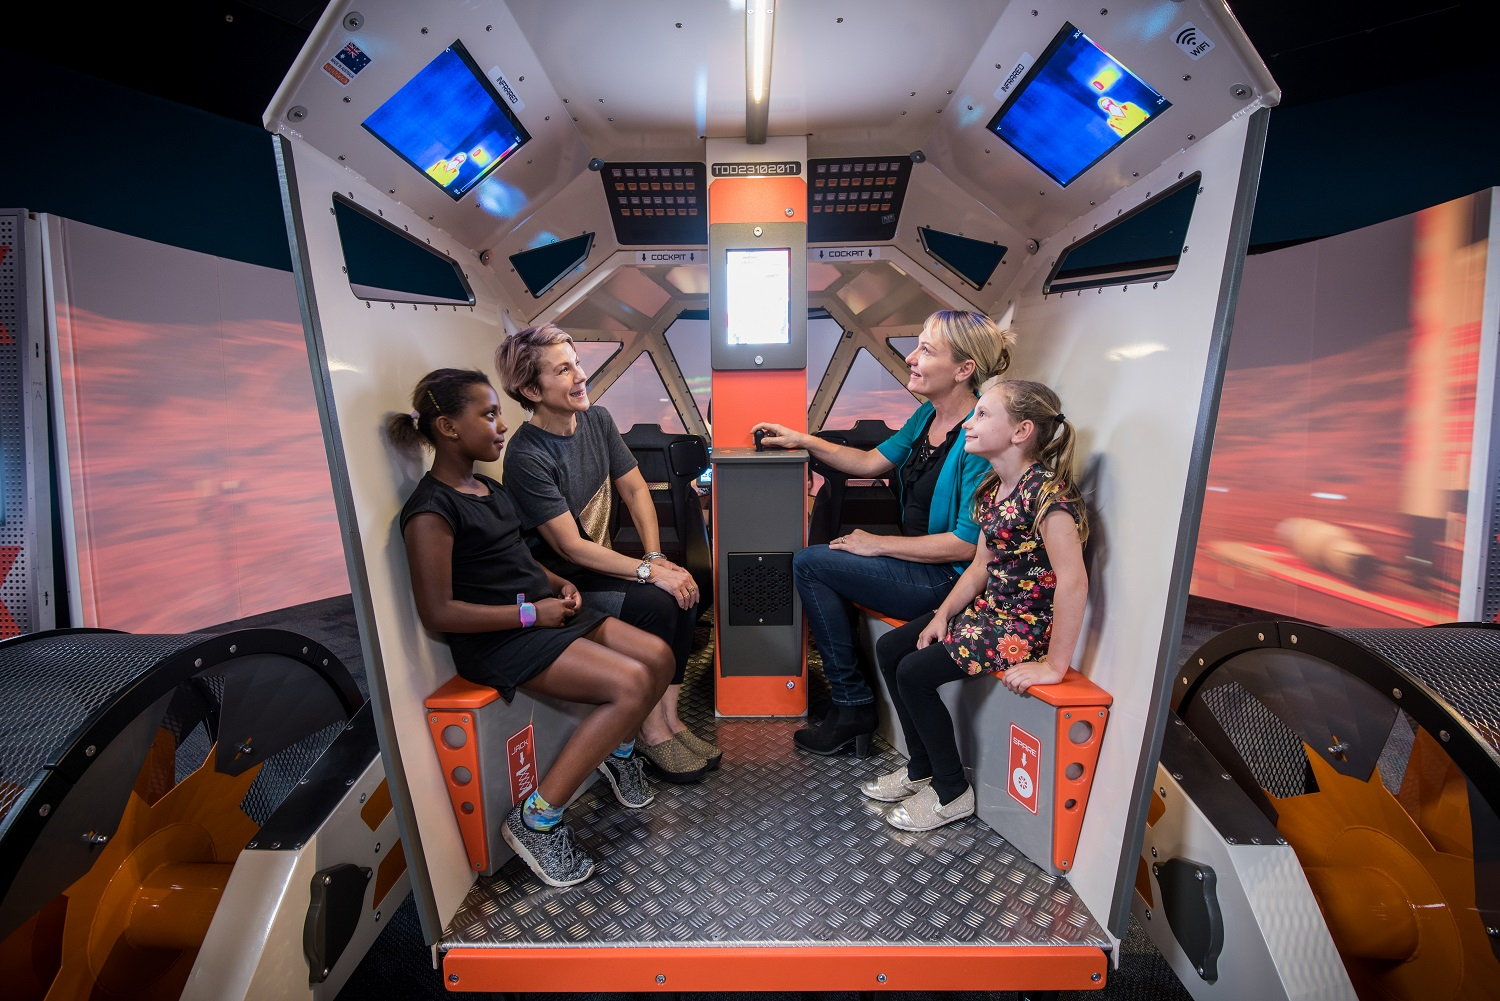 Test the Boundaries of Exploration with New Fall Exhibit Planet Pioneers